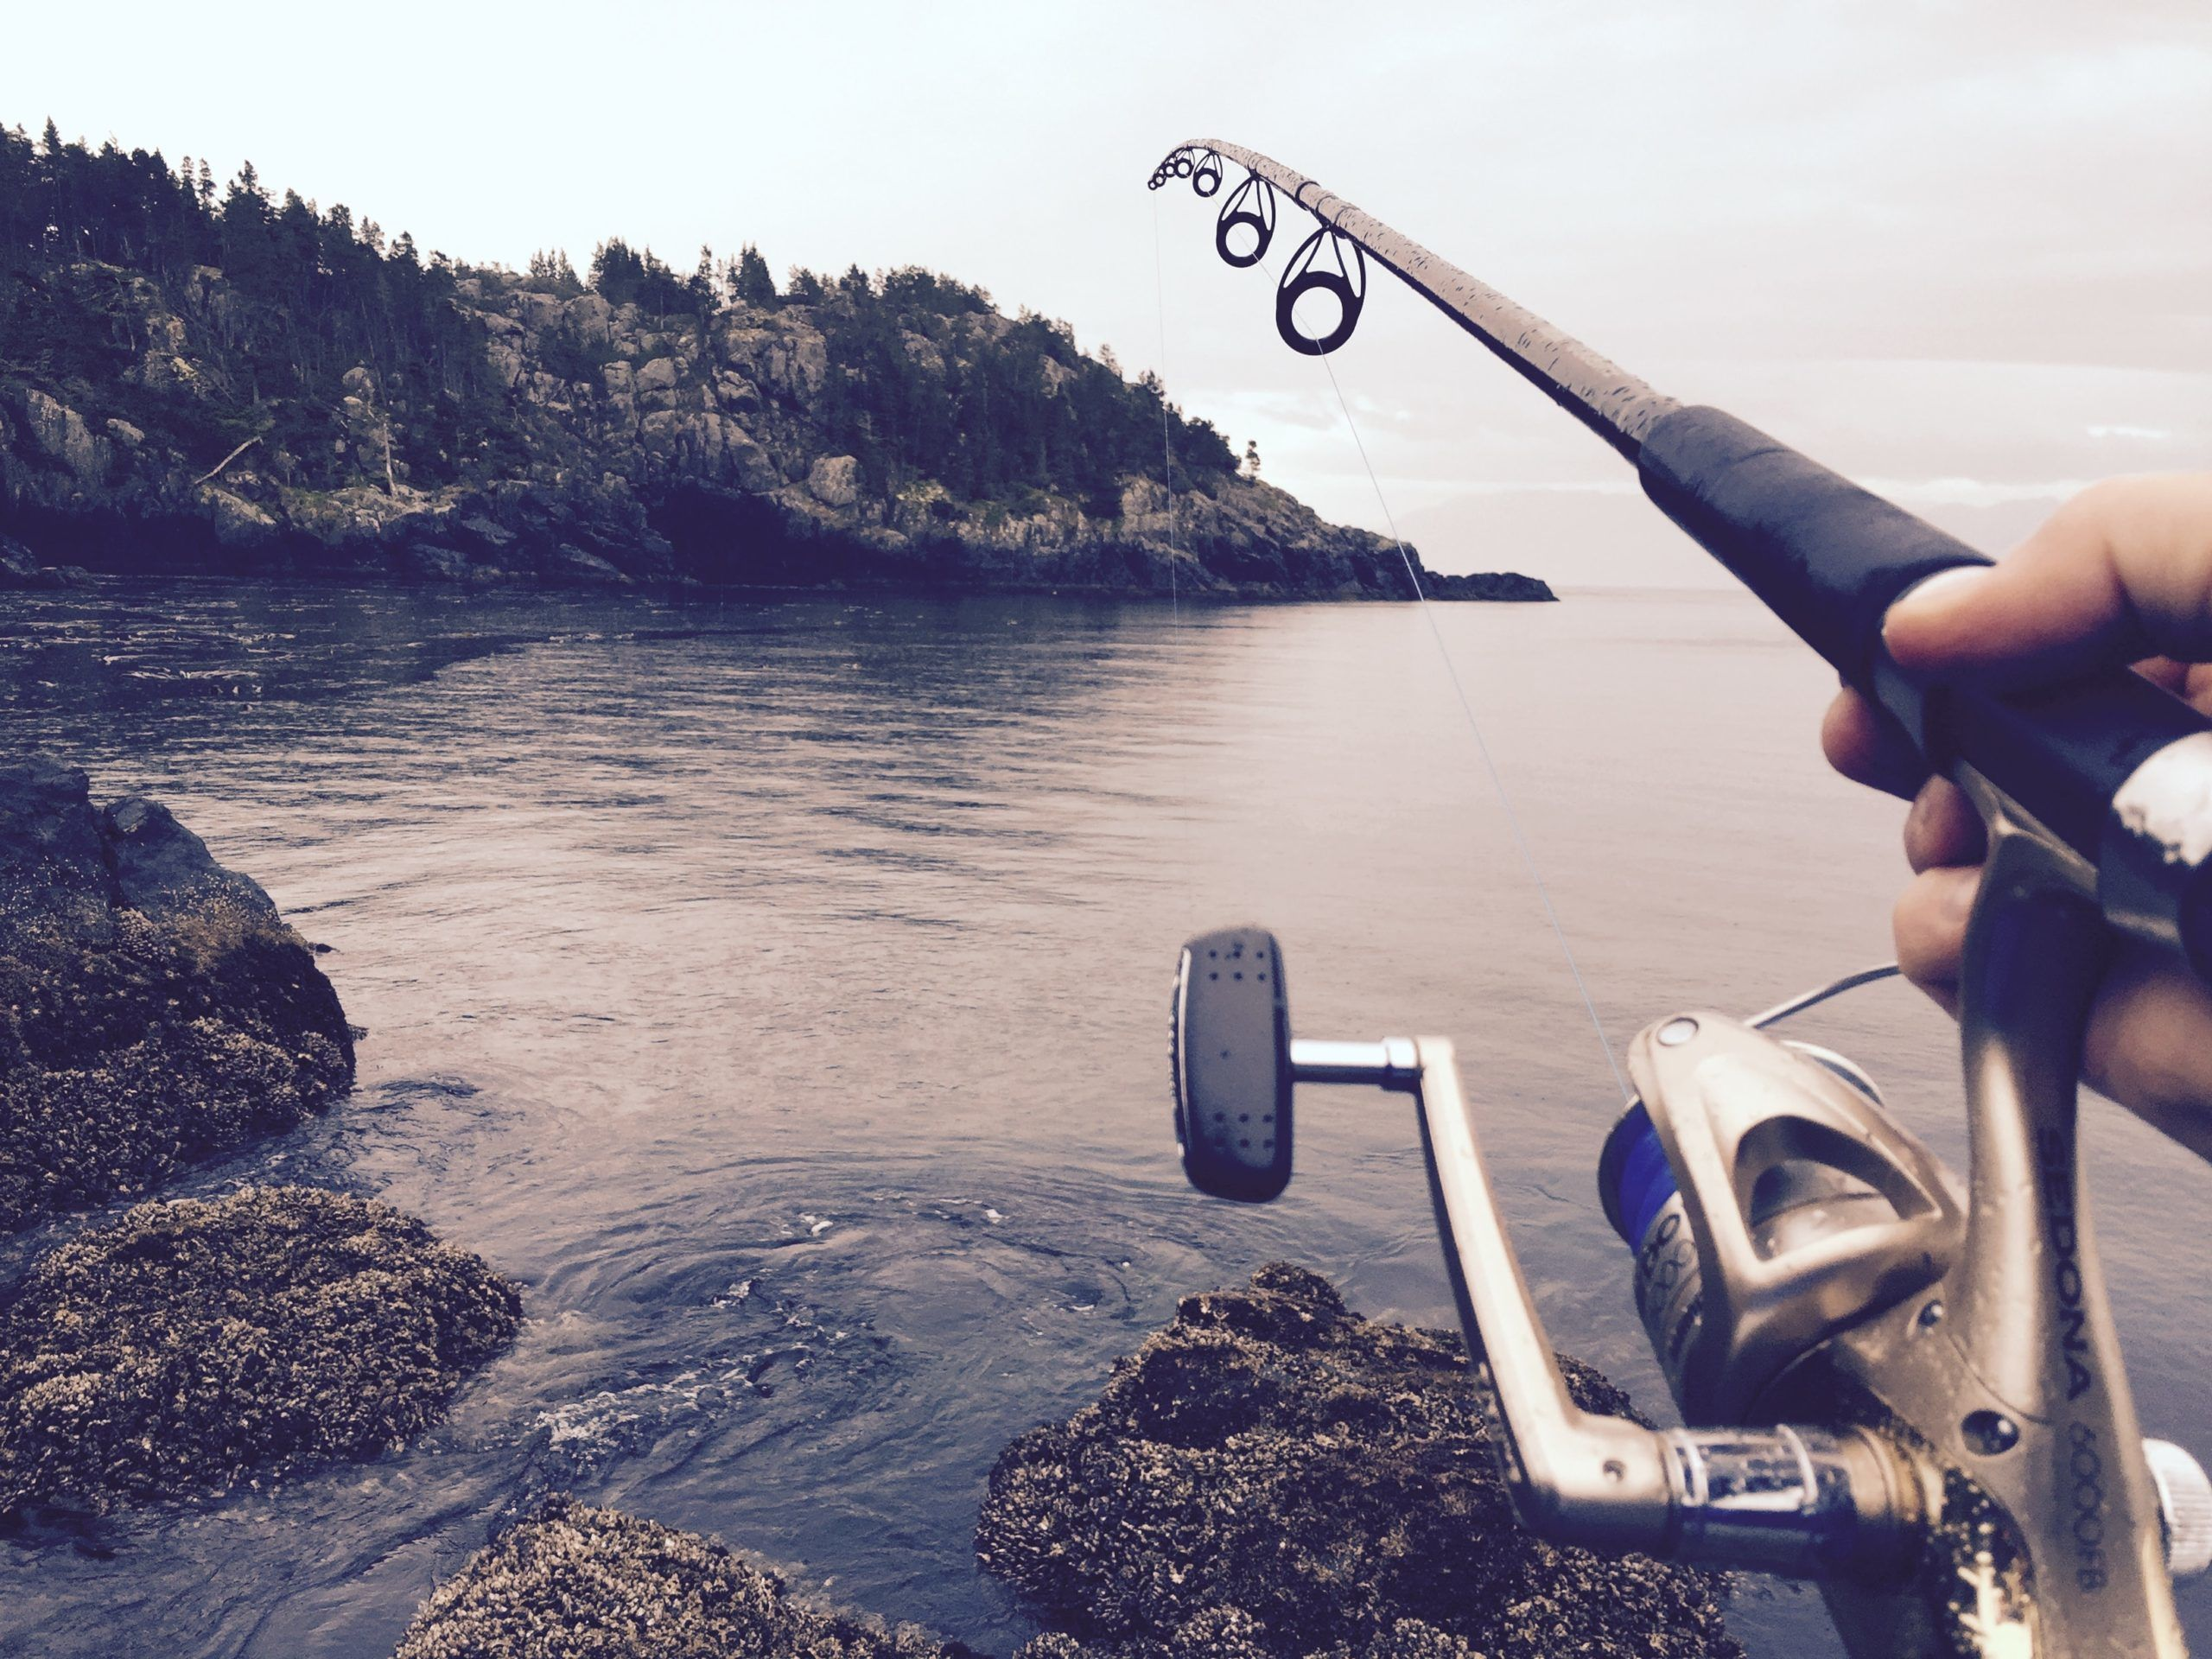 inshore fishing rod and reel for saltwater